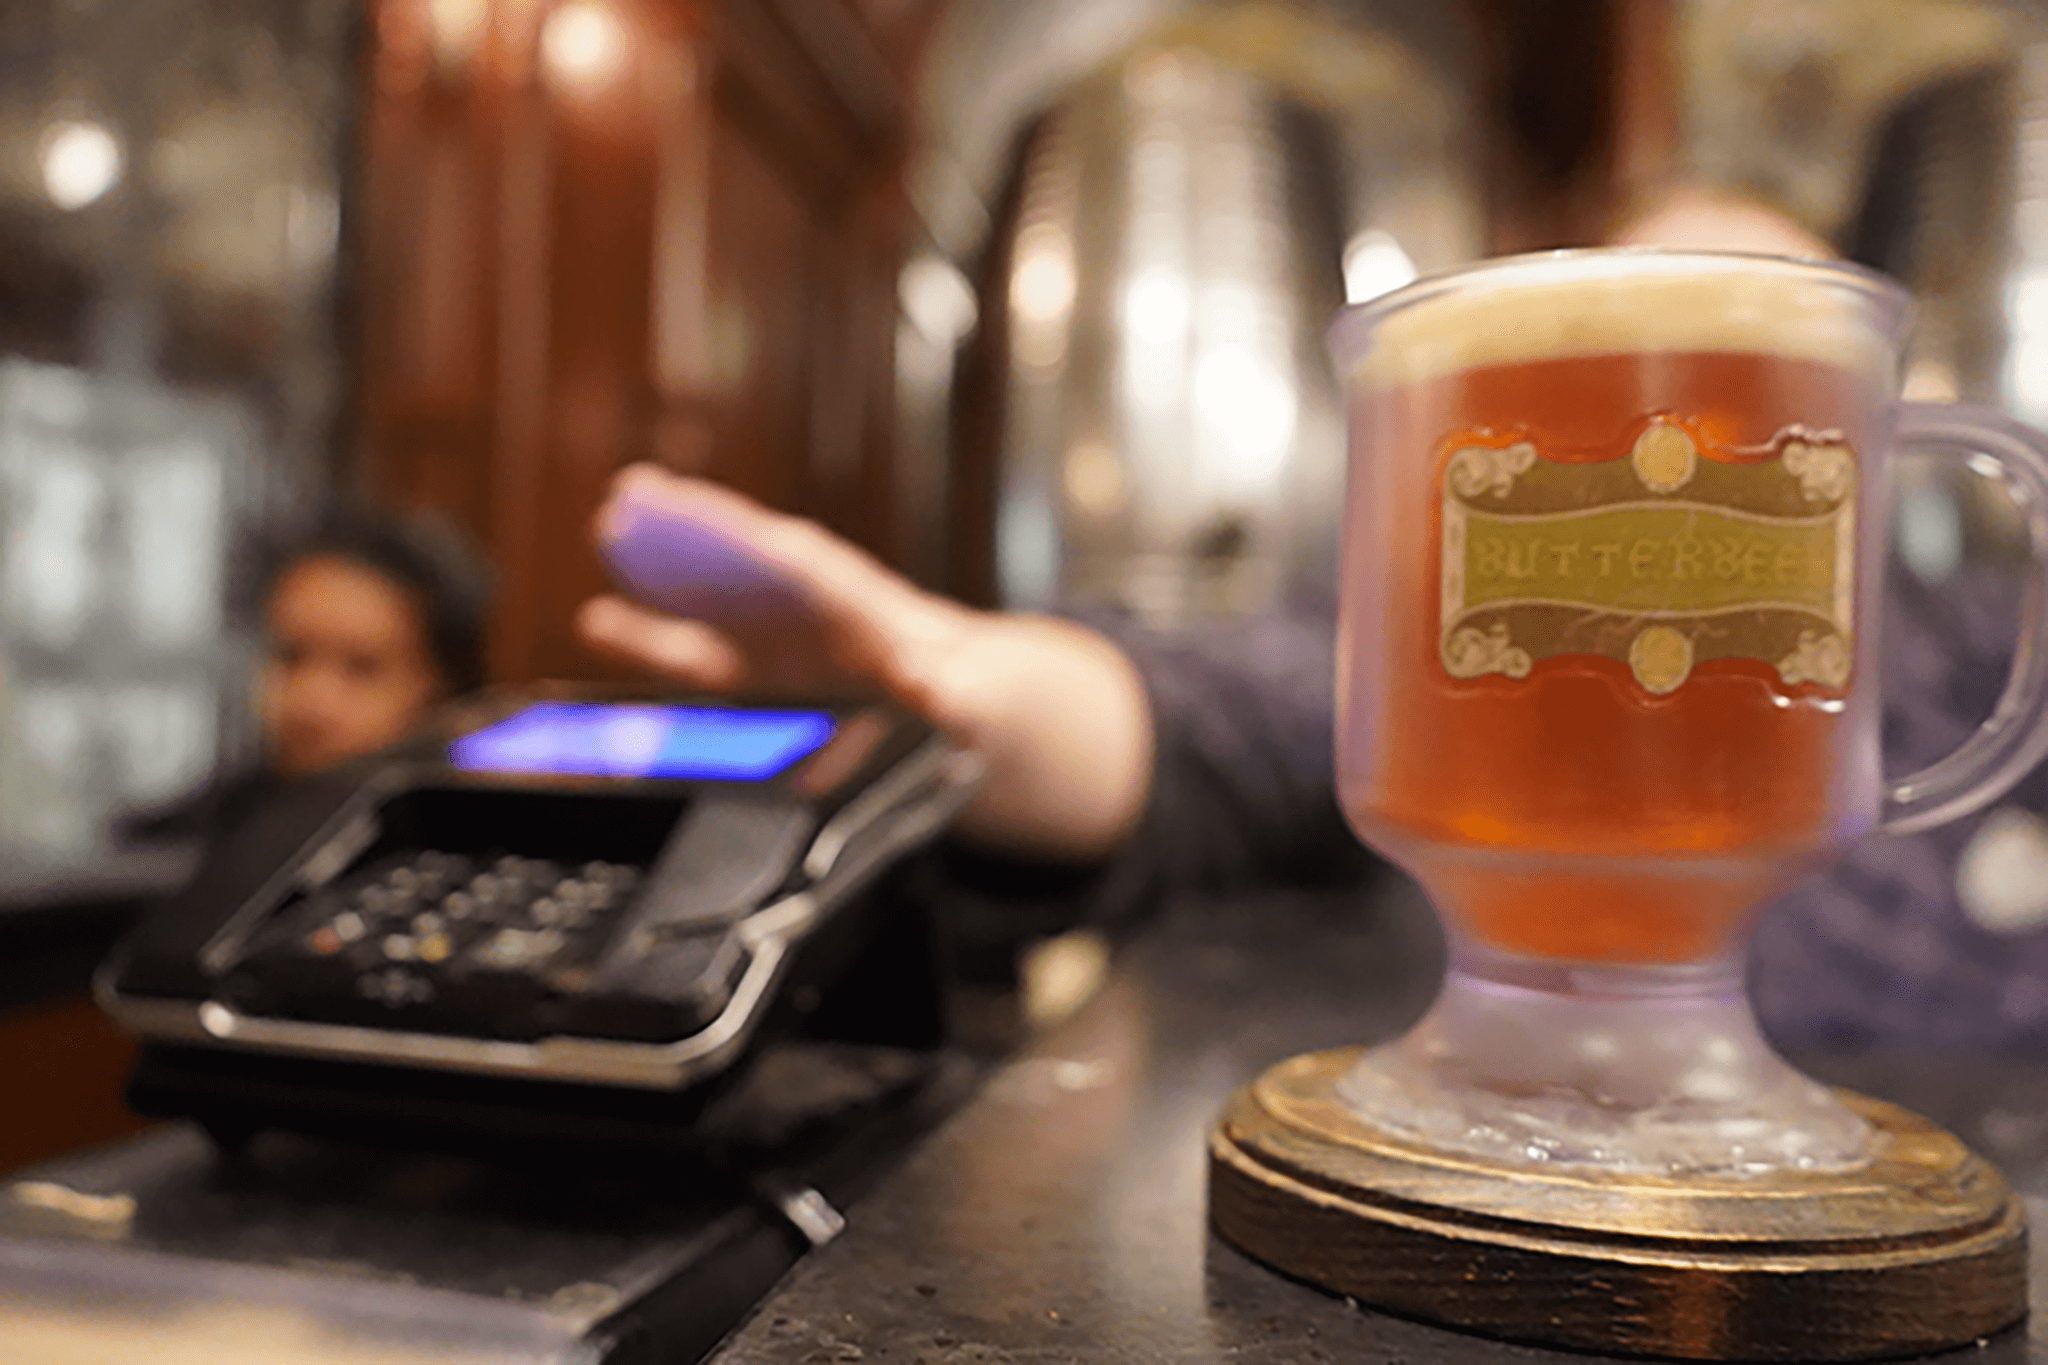 Cold Butterbeer inside The Hopping Pot in Diagon Alley at Universal Studios Orlando